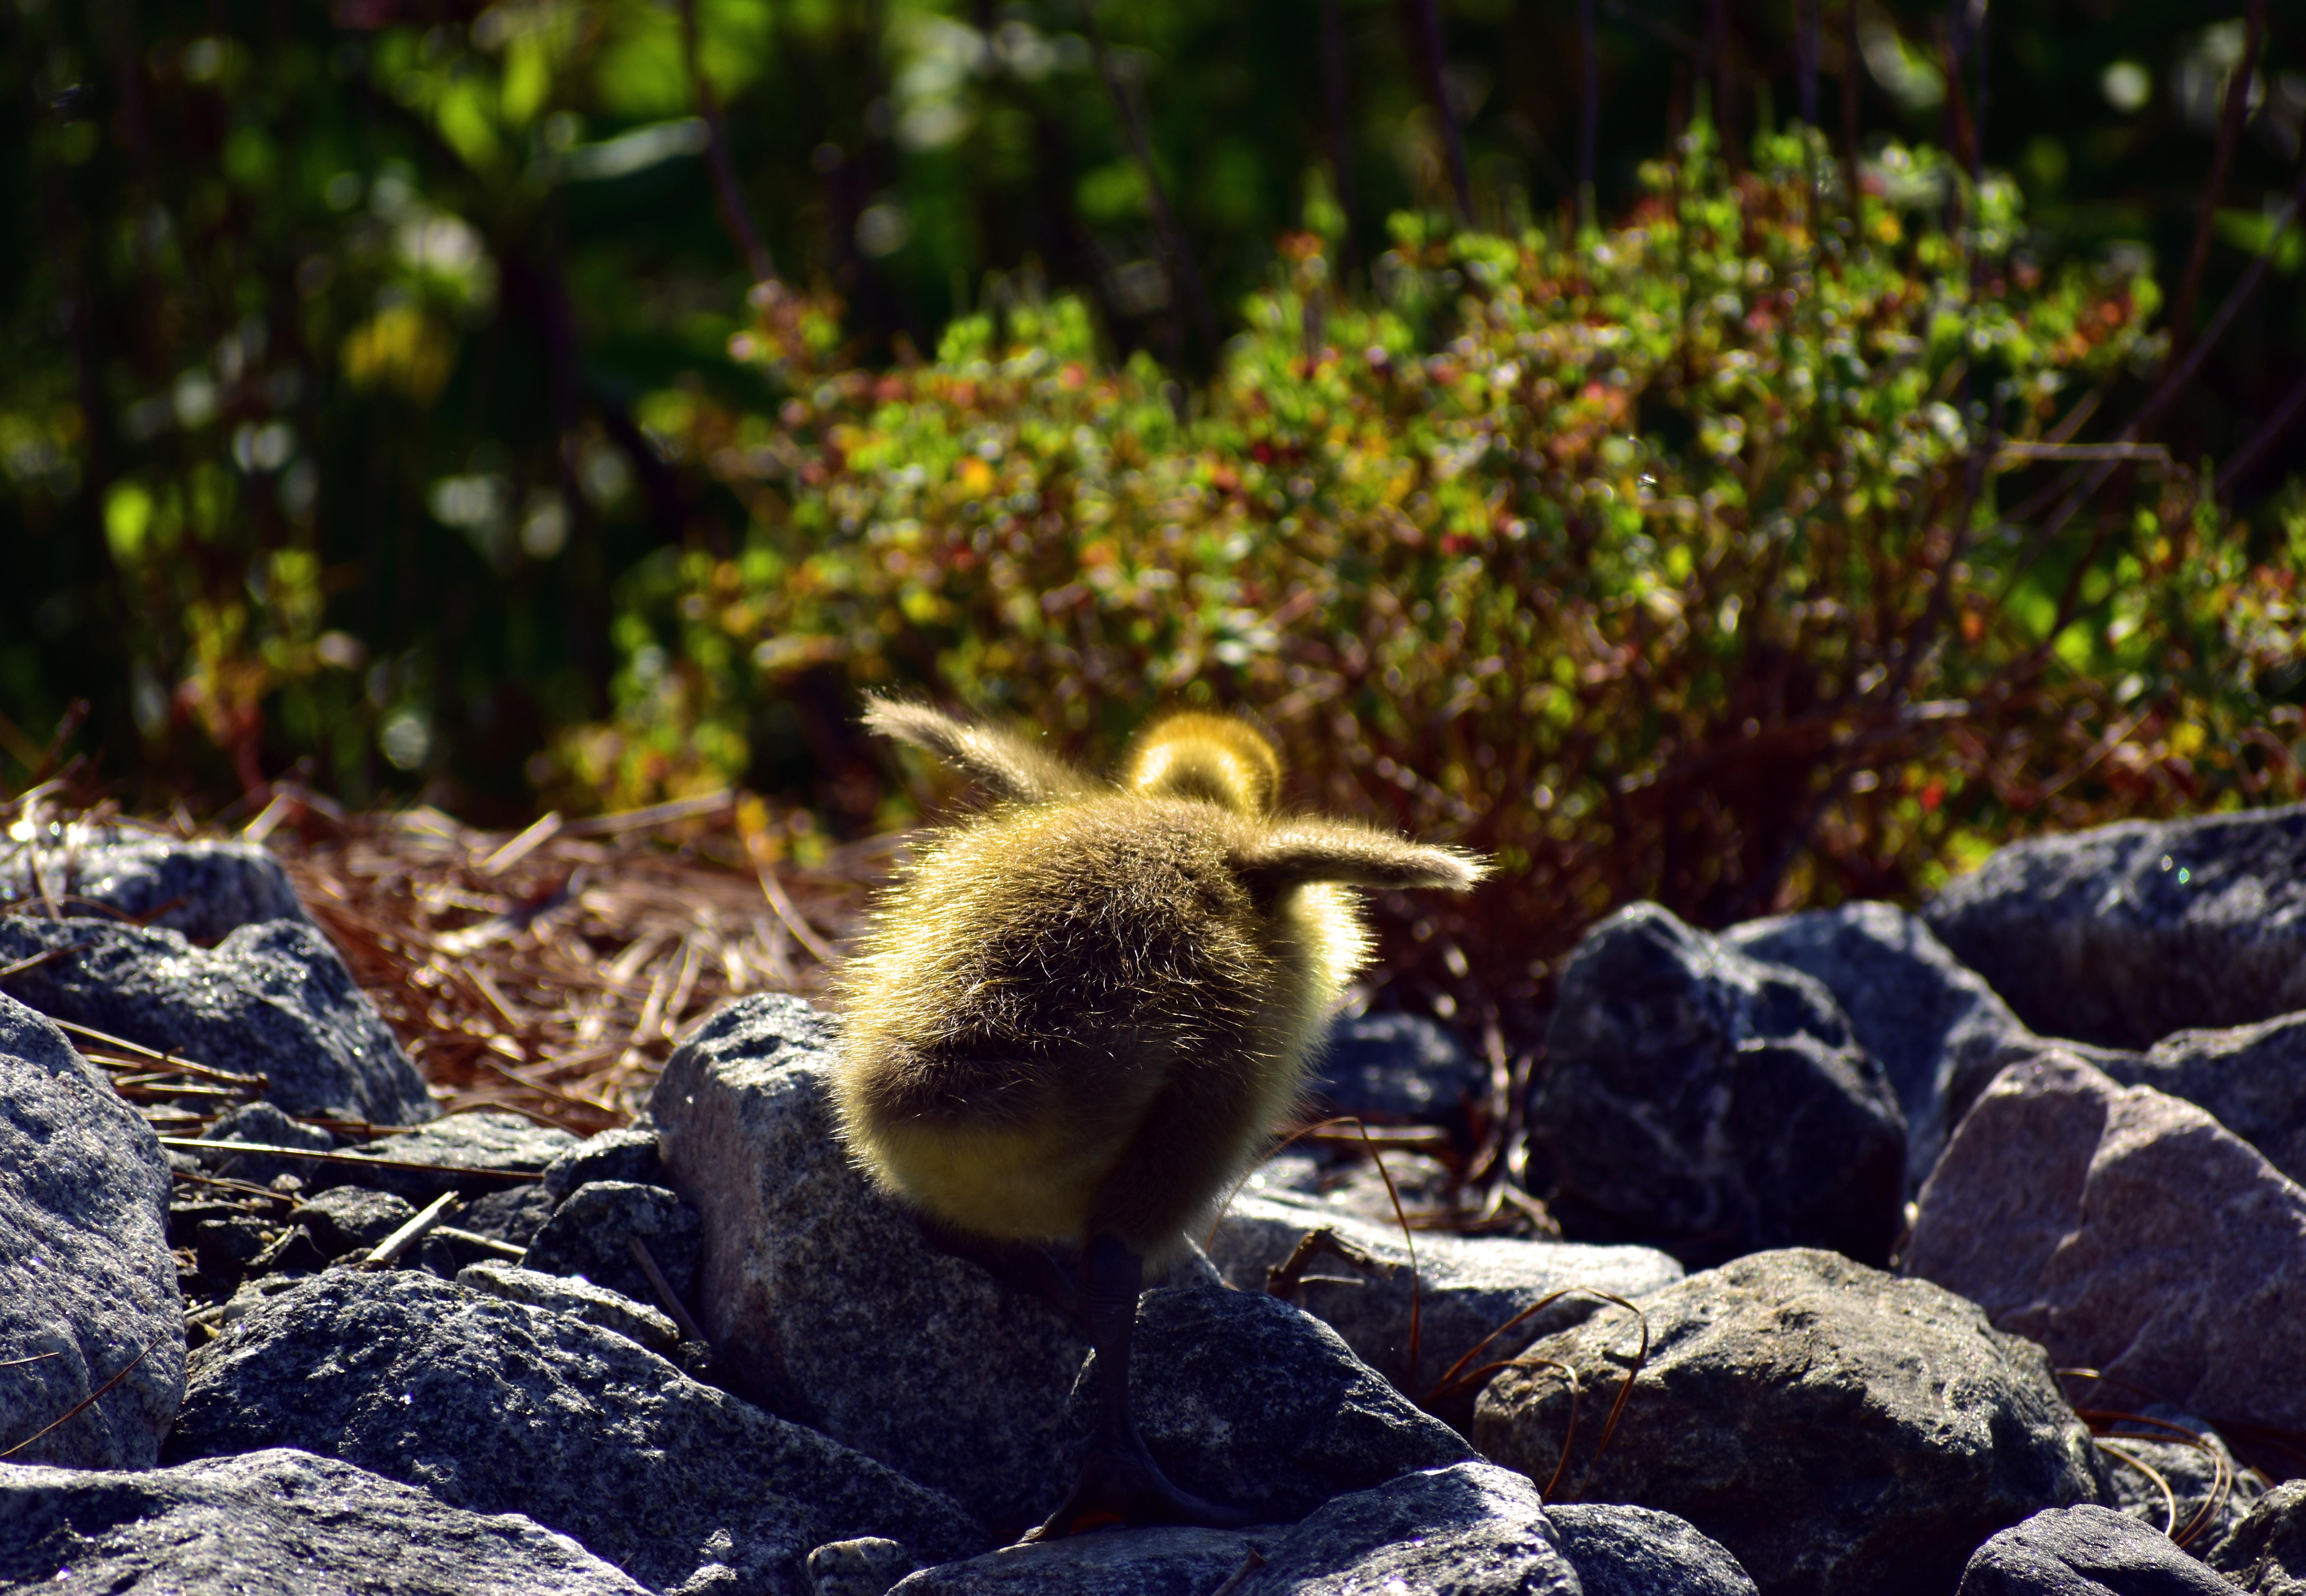 Bailey Maier photo of a baby bird from exhibition in Penfield Library